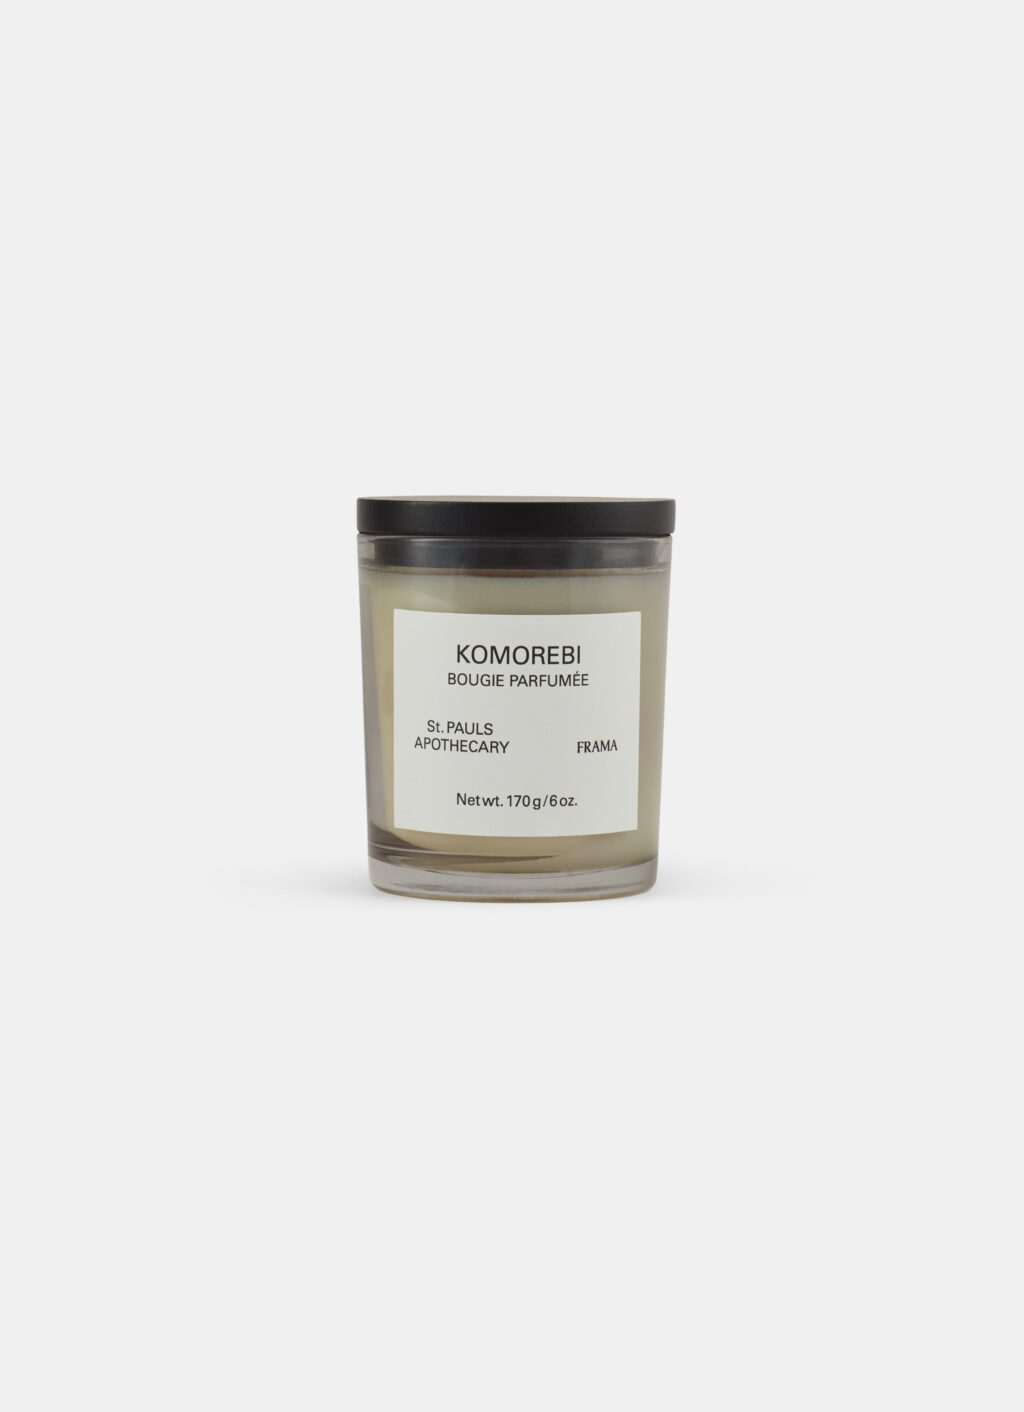 Frama - St. Pauls Apothecary - Komorebi - Scented Candle - 170 g